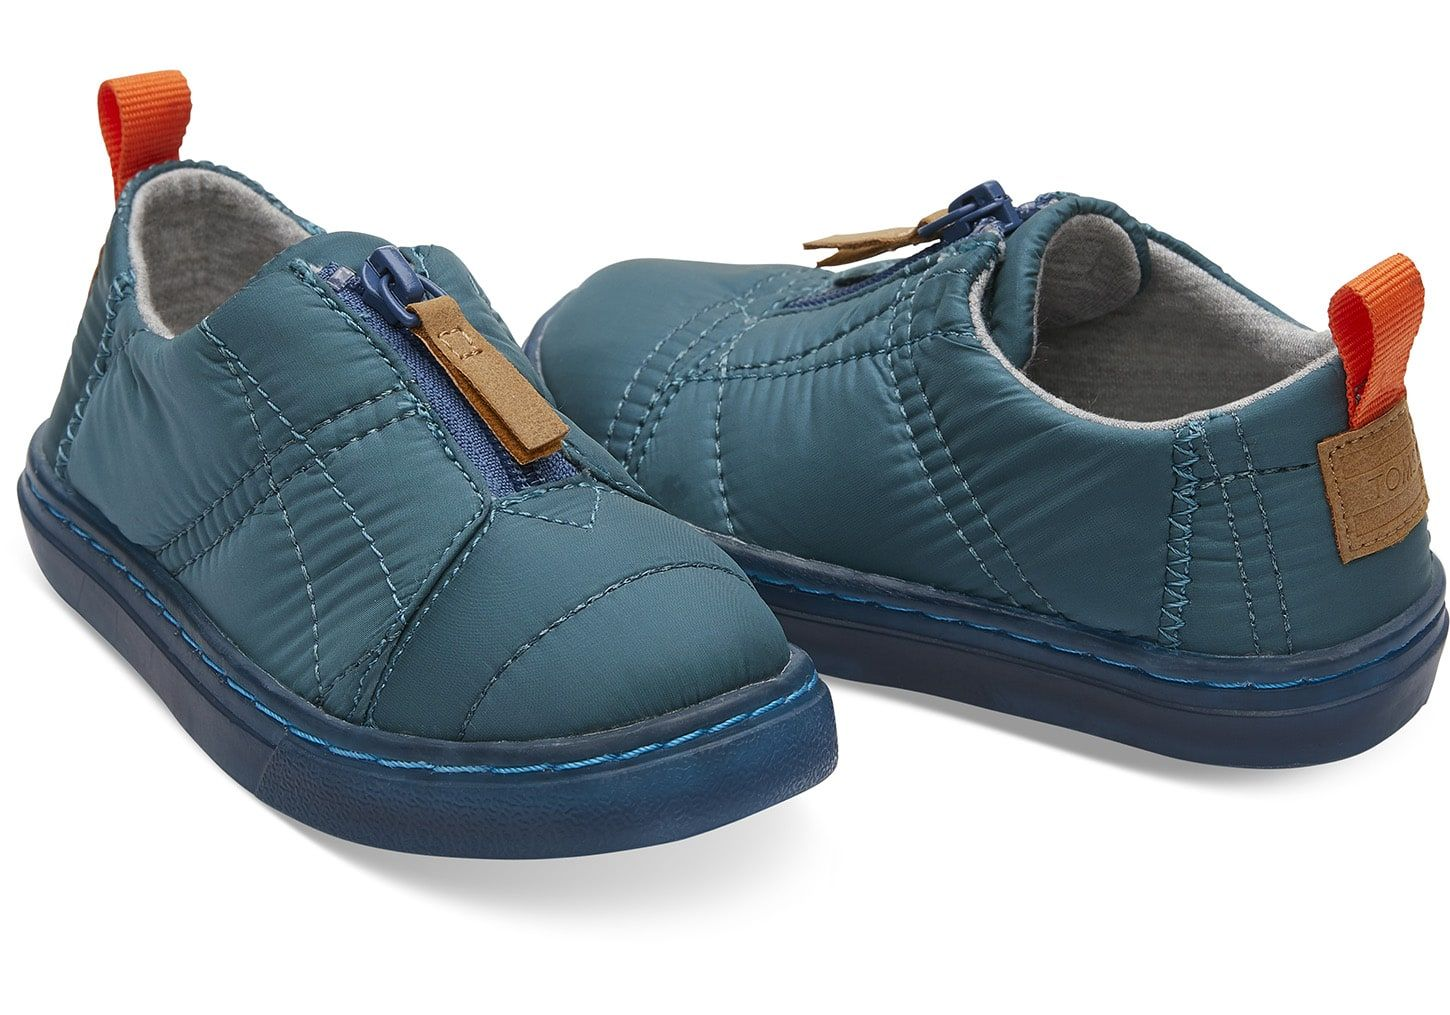 54564e4f7 Stellar Blue Quilted Tiny TOMS Lenny Sneakers | Fall 2018 Munchkin ...